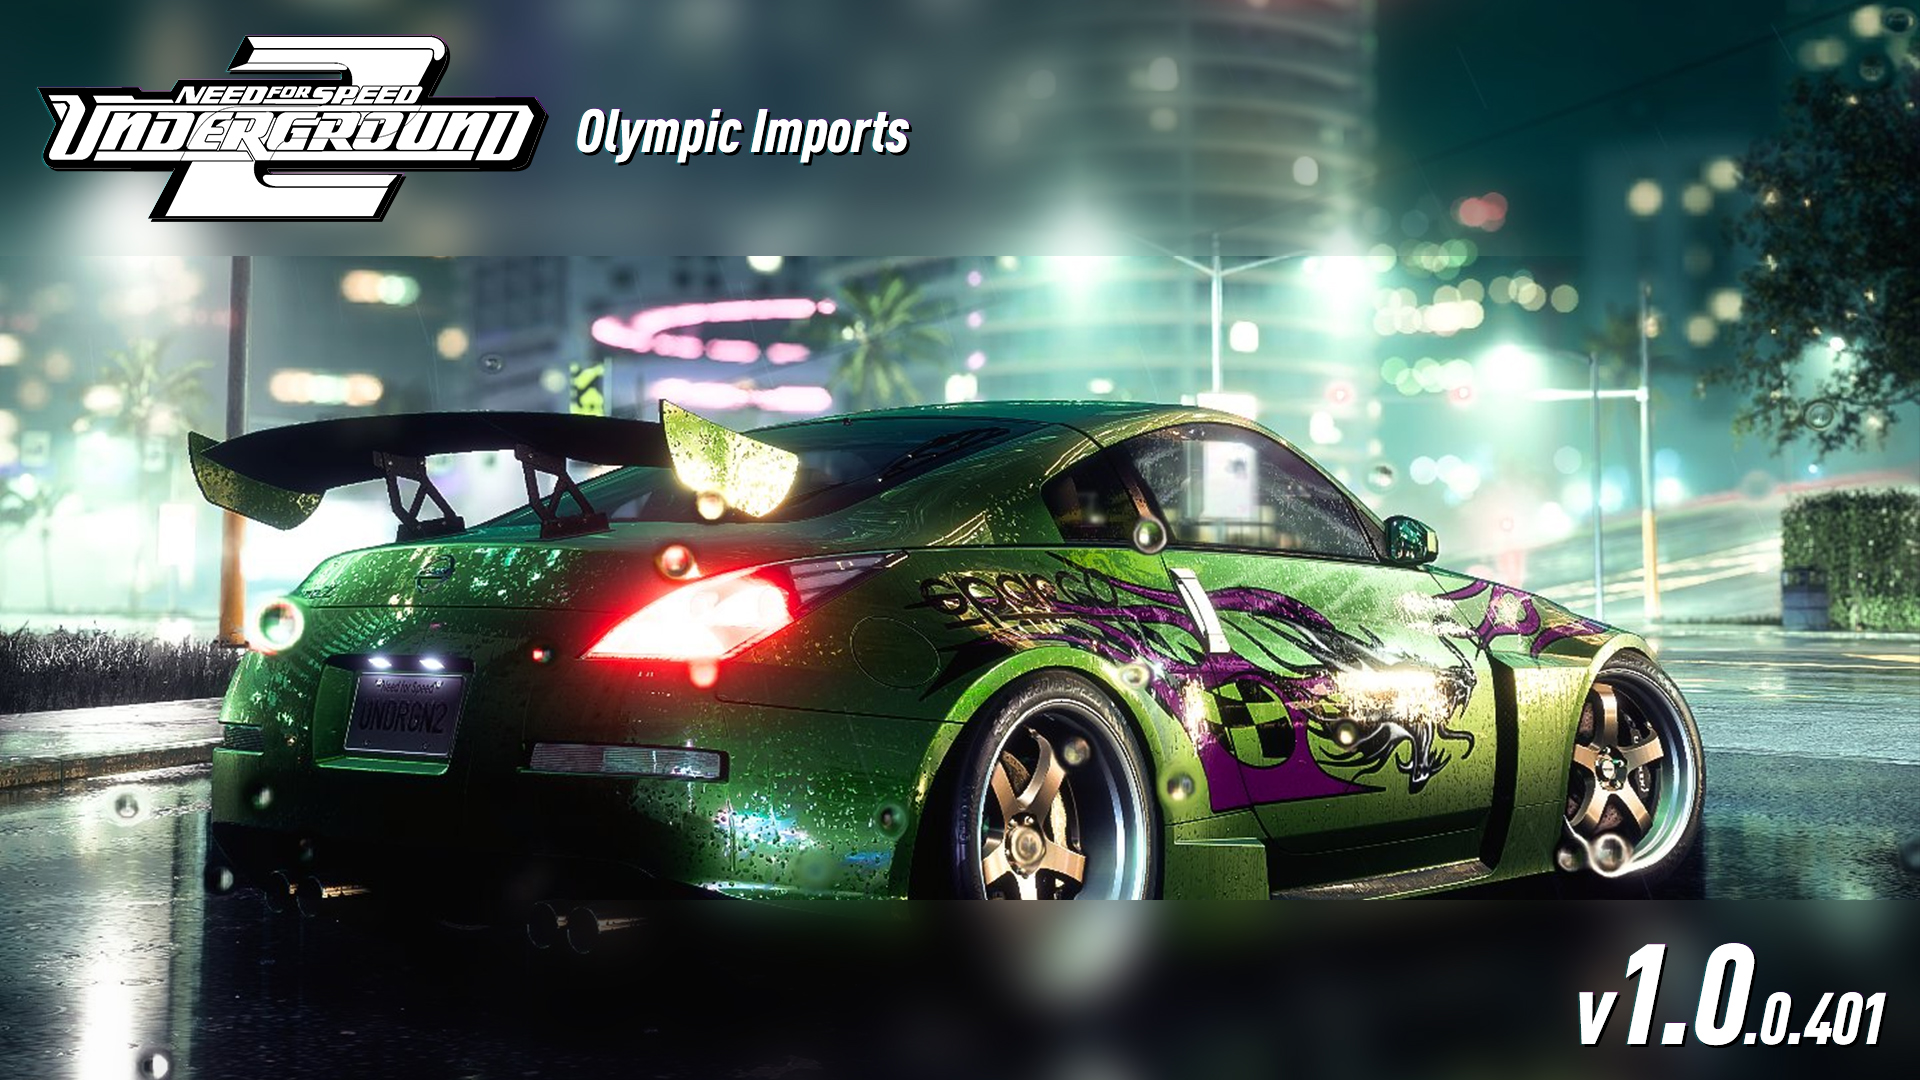 Nfsmods Nfsu2 Olympic Imports